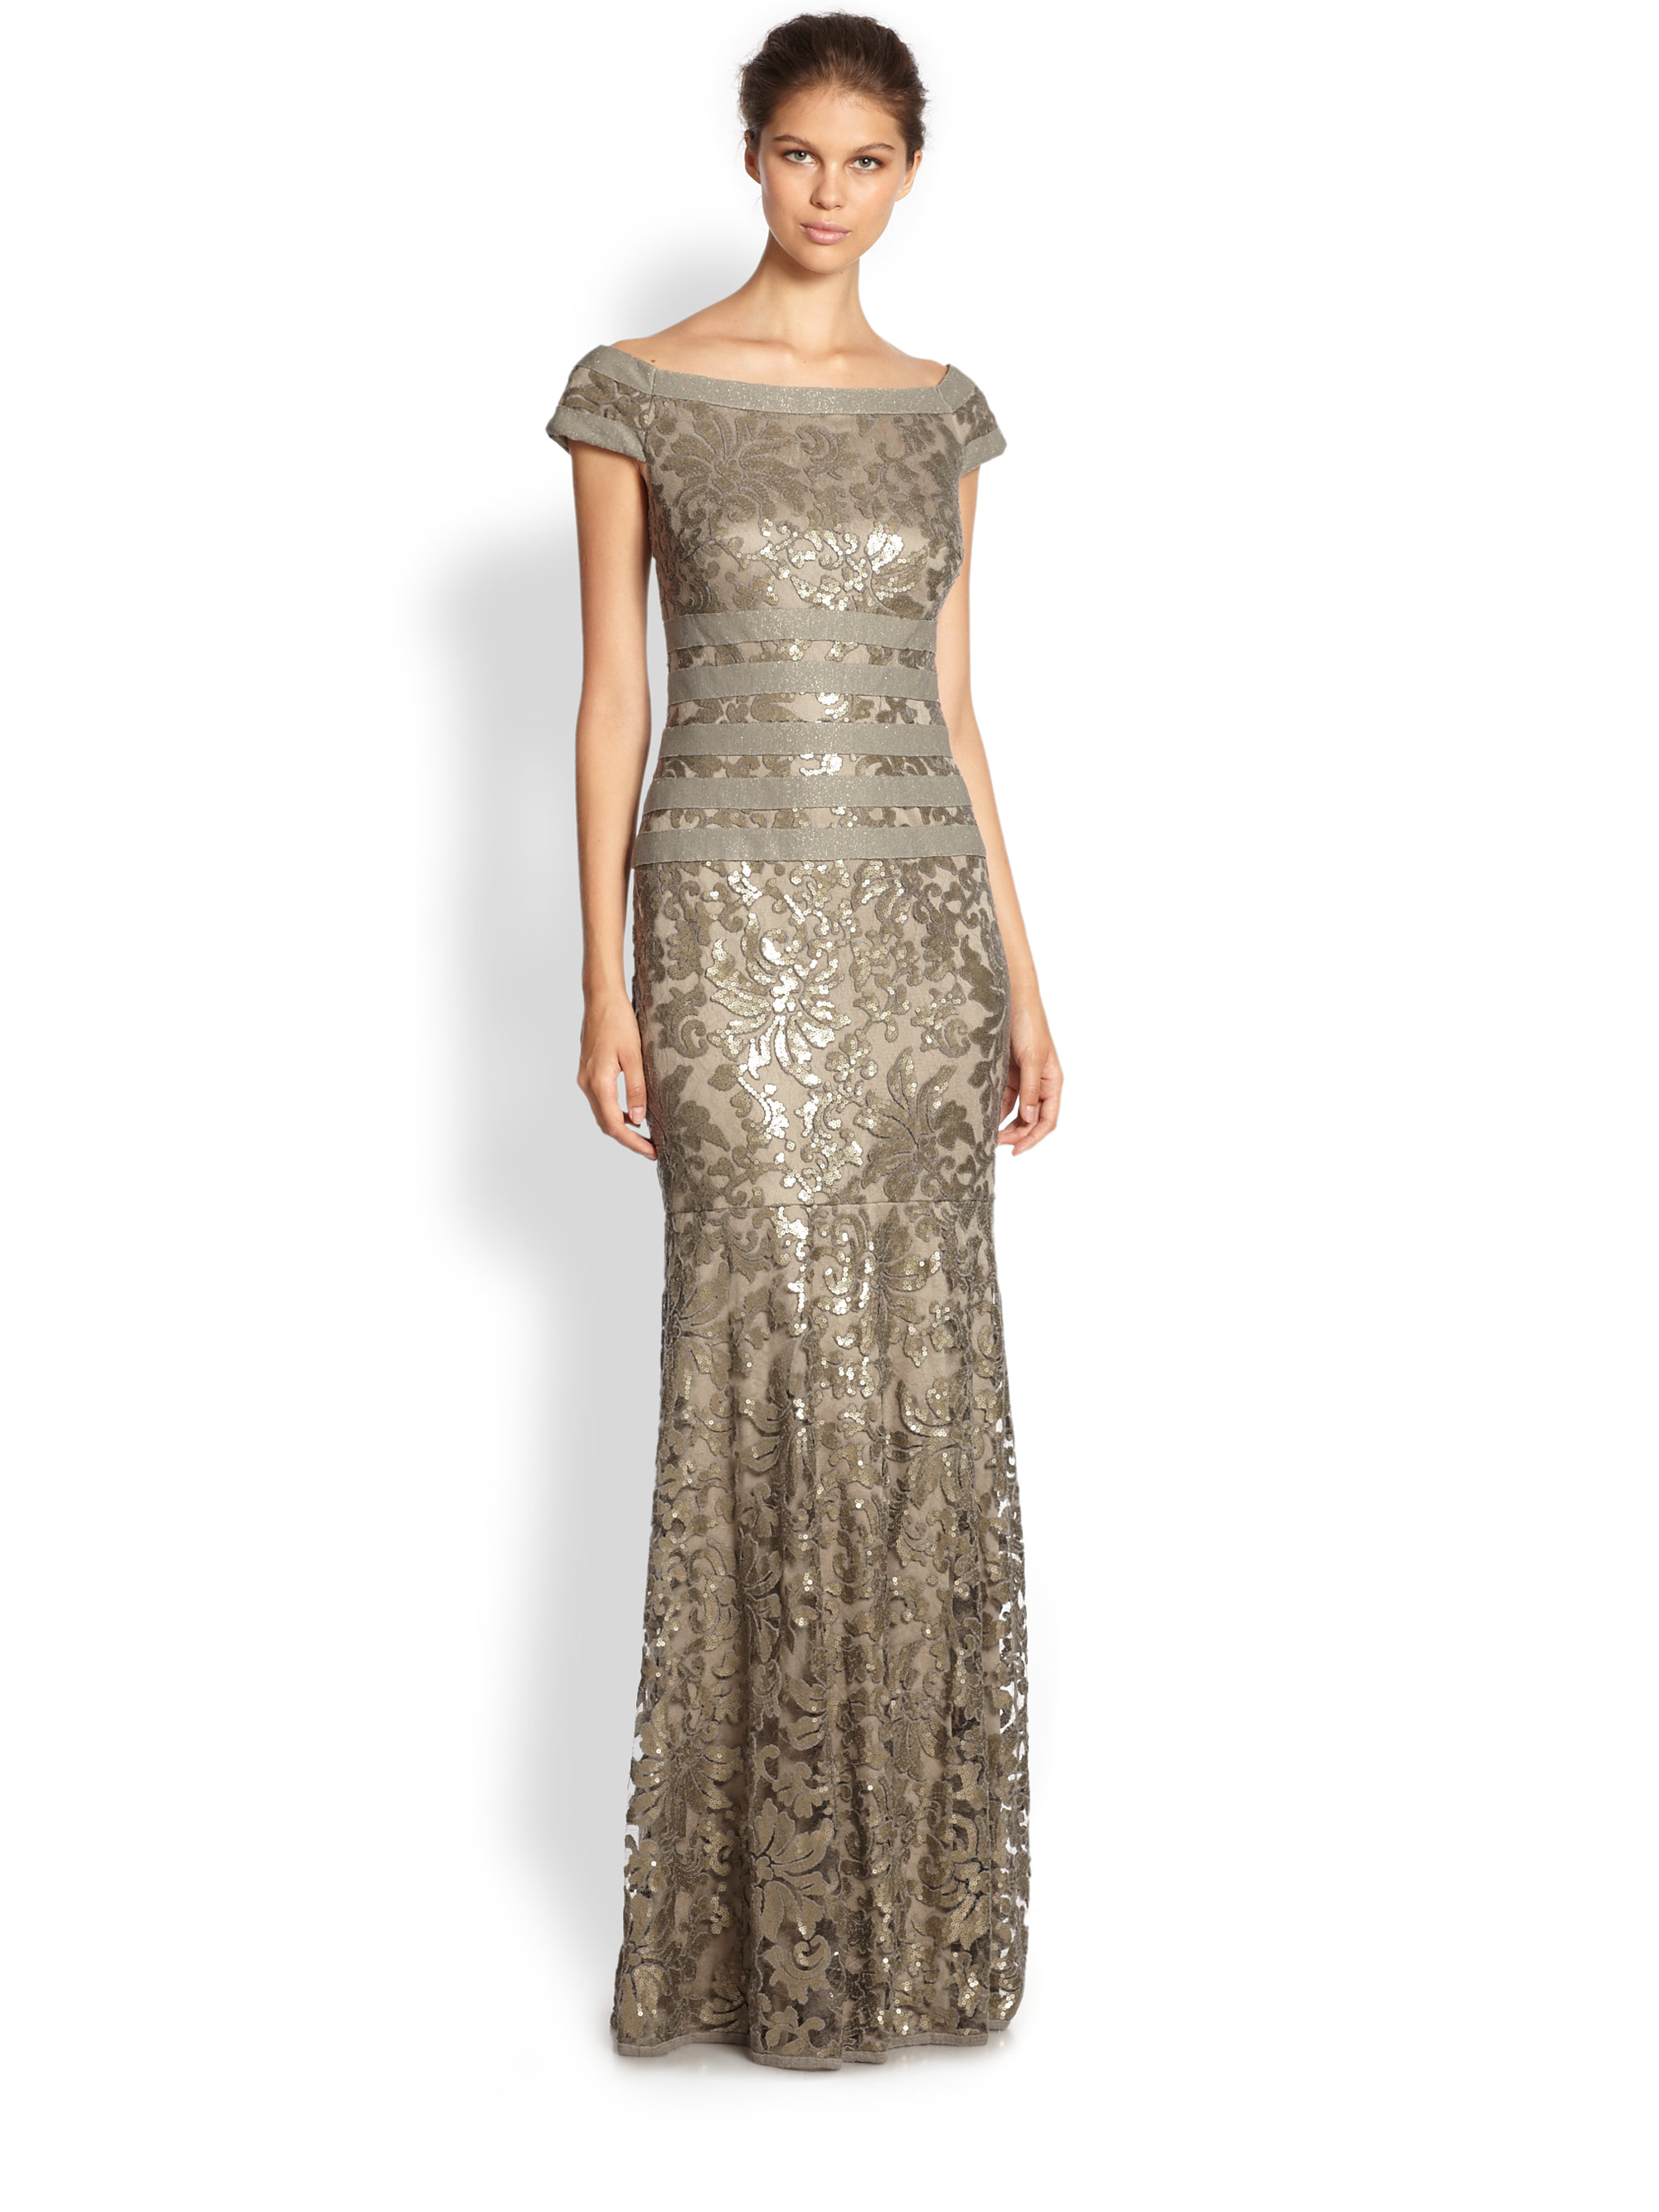 Lyst - Tadashi shoji Sequined Lace Gown in Gray